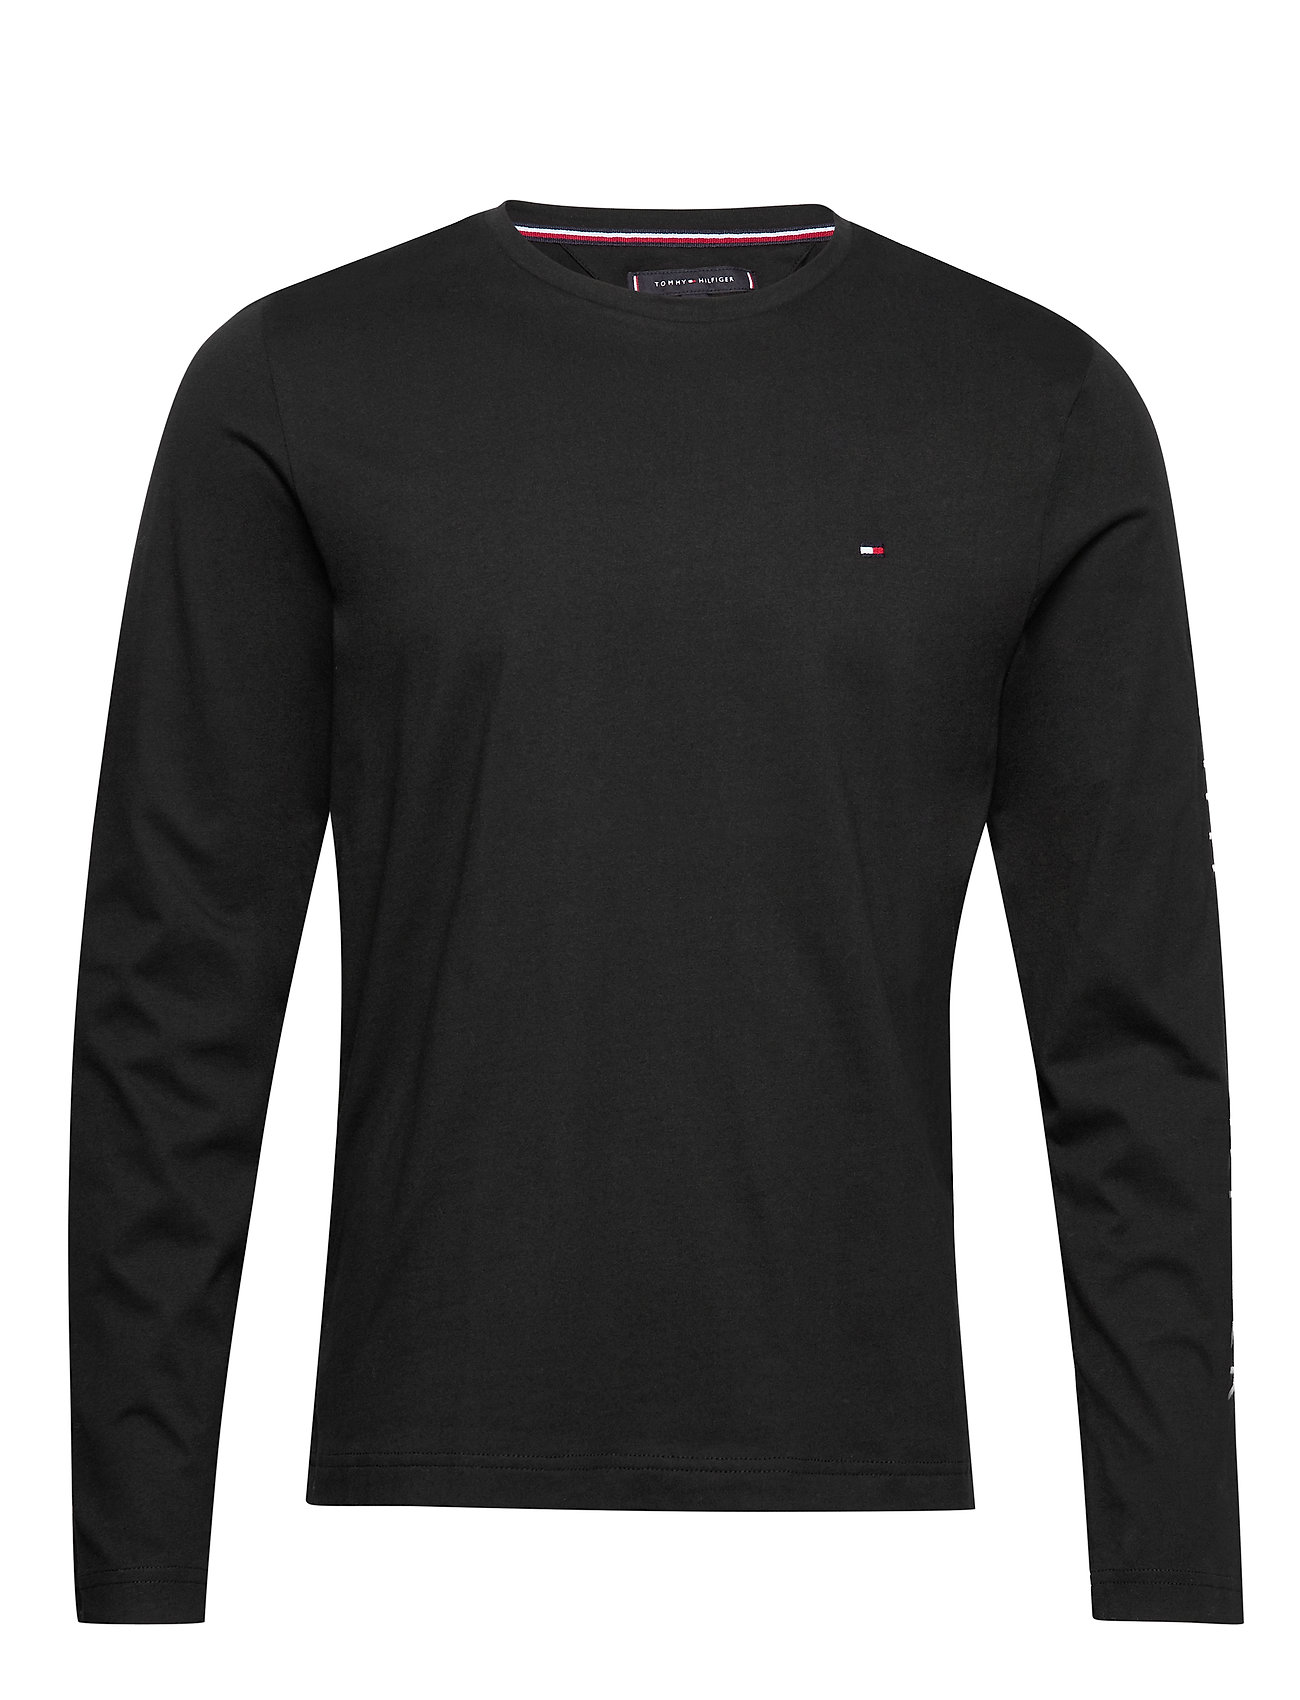 Tommy Hilfiger TOMMY LOGO LONG SLEEVE TEE - BLACK